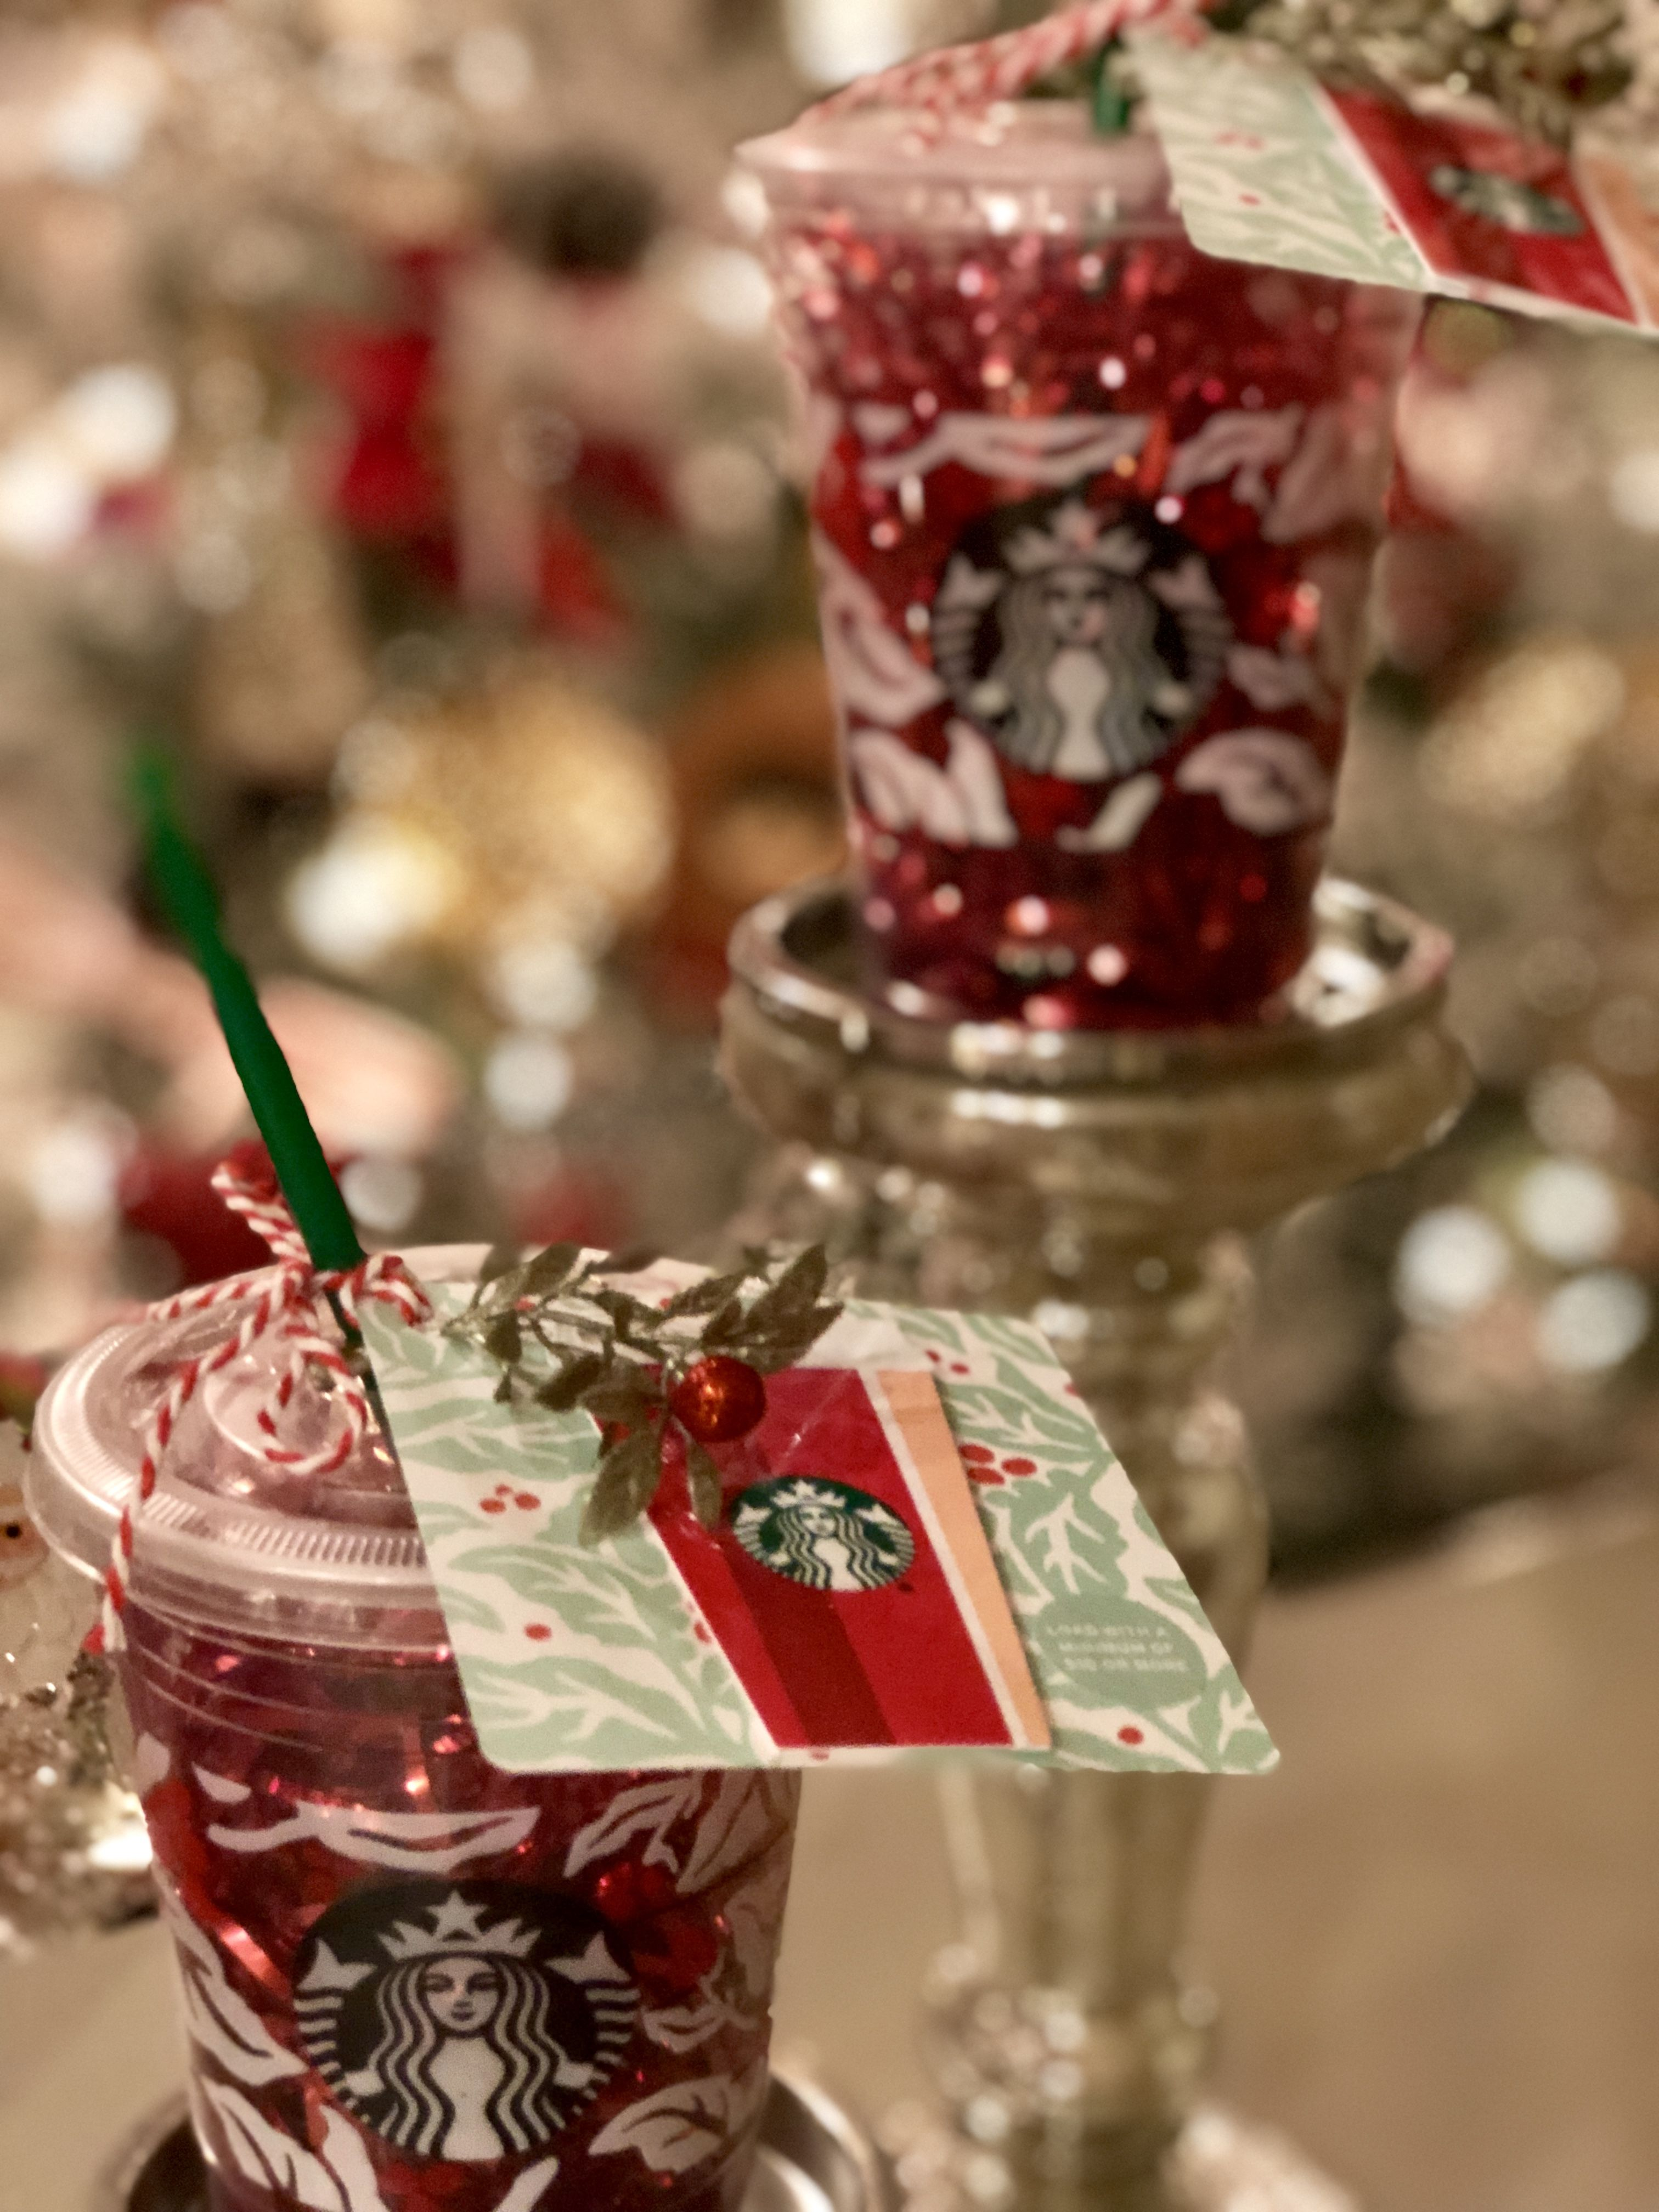 Christmas teacher gifts cute starbucks cup stuffed with